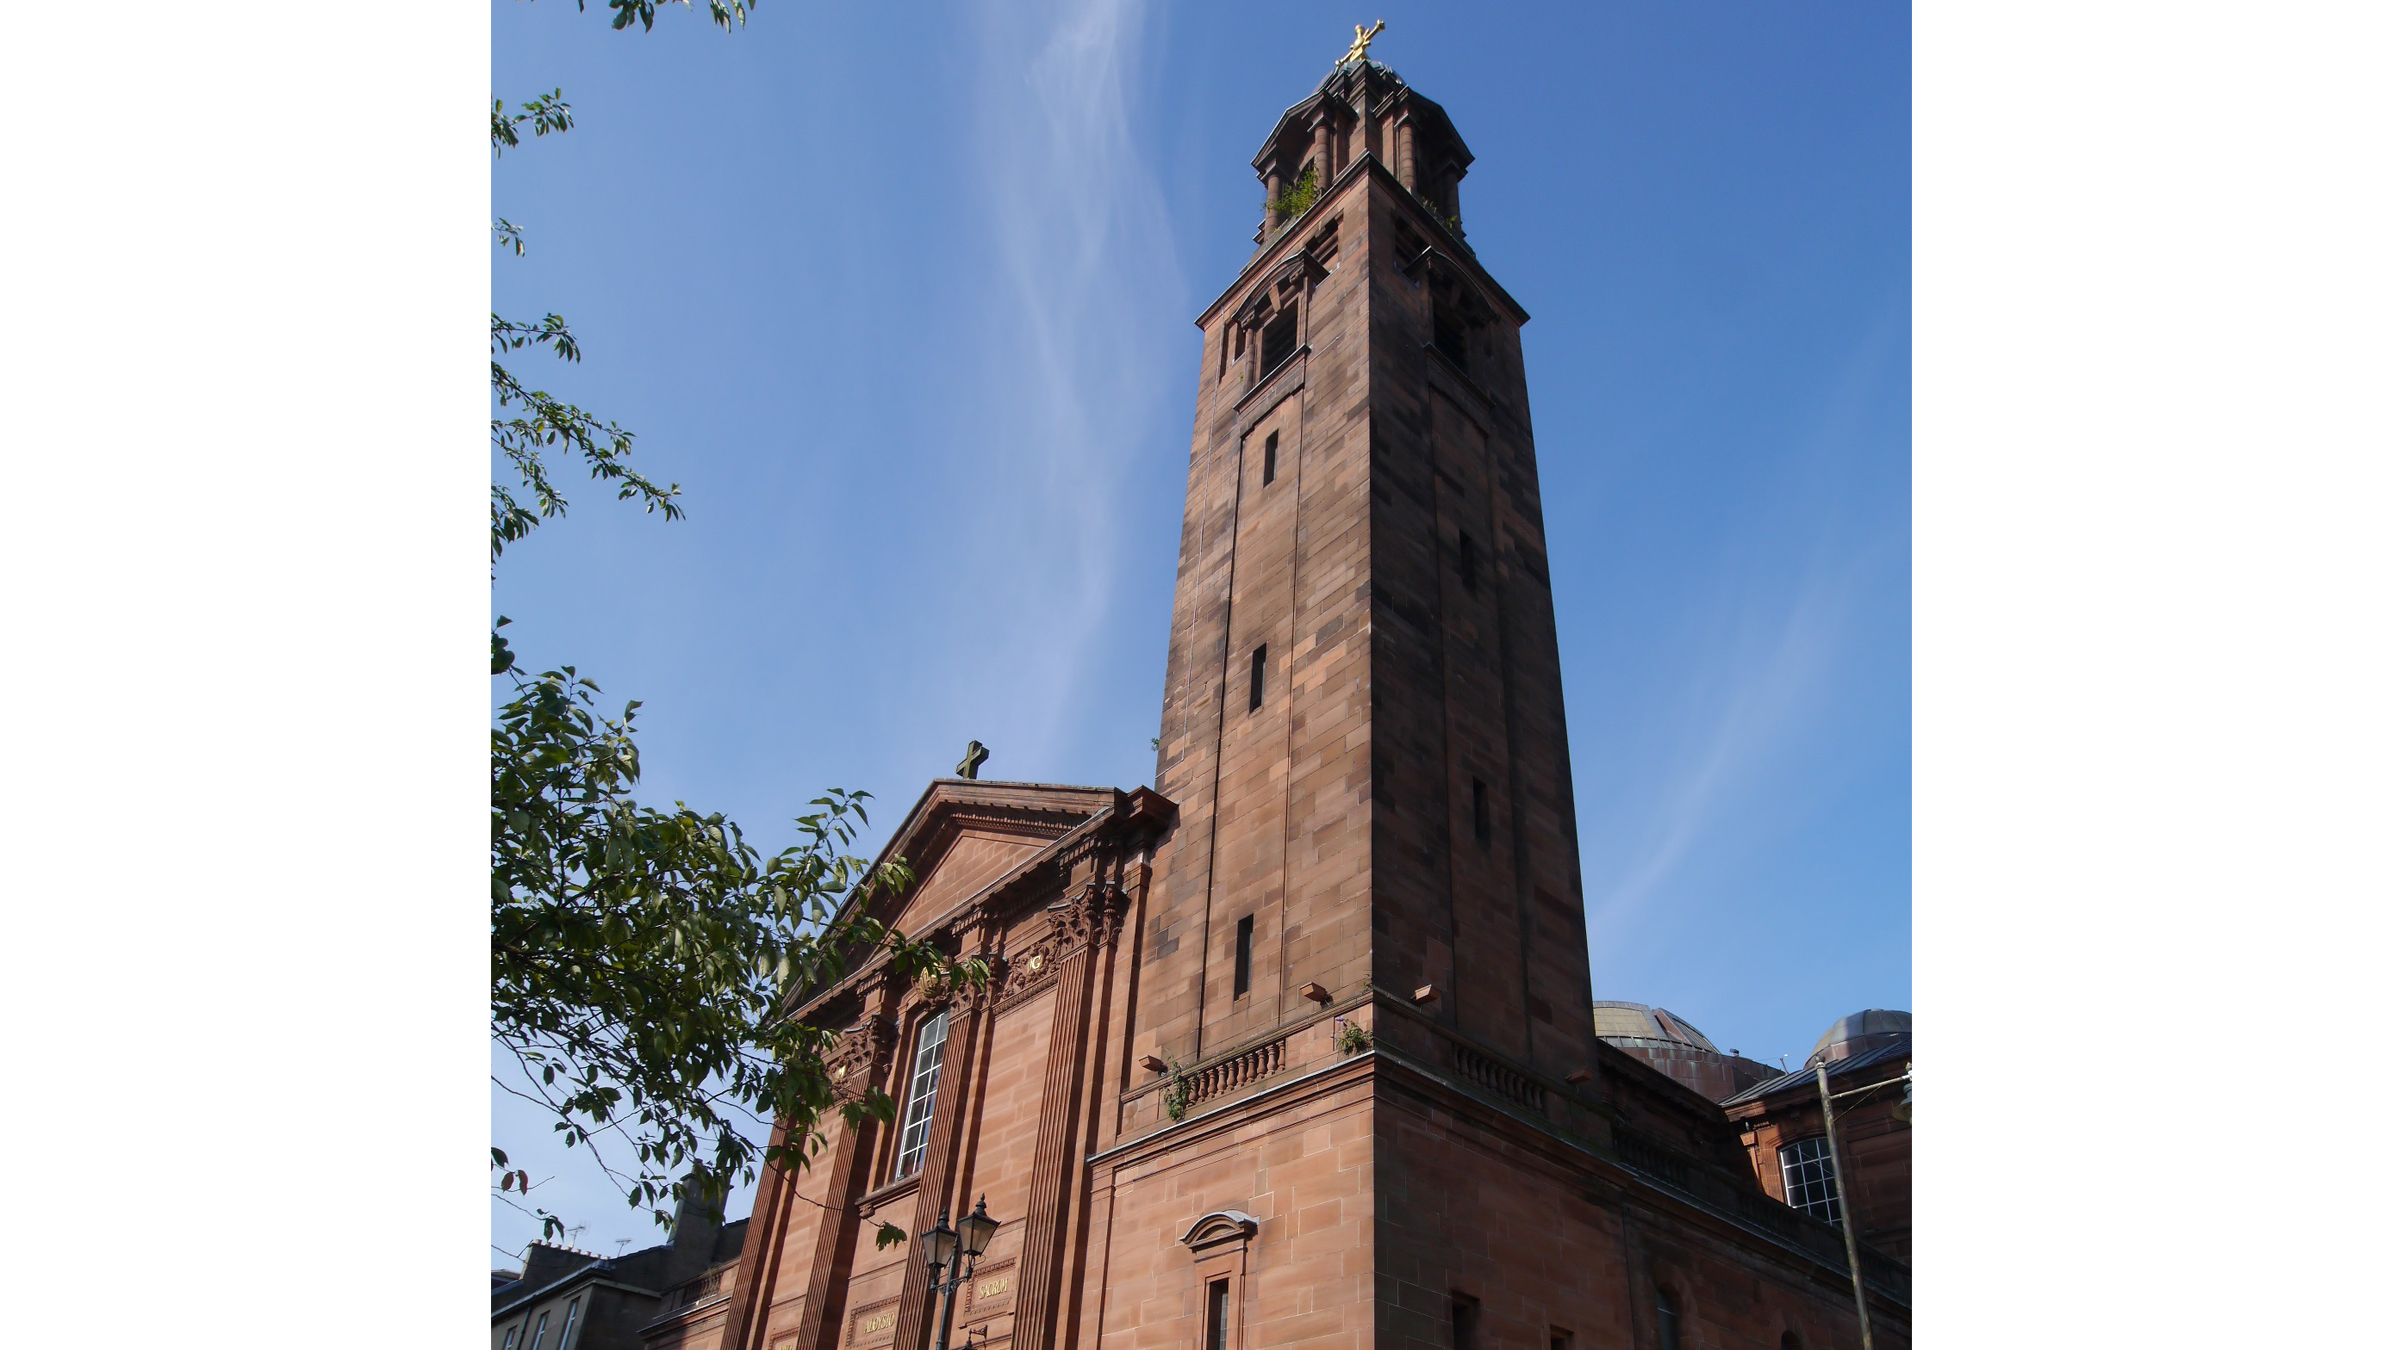 Mosaic wins Heritage Lottery Fund grant for urgent repairs to iconic bell tower at St Aloysius' Church, Glasgow